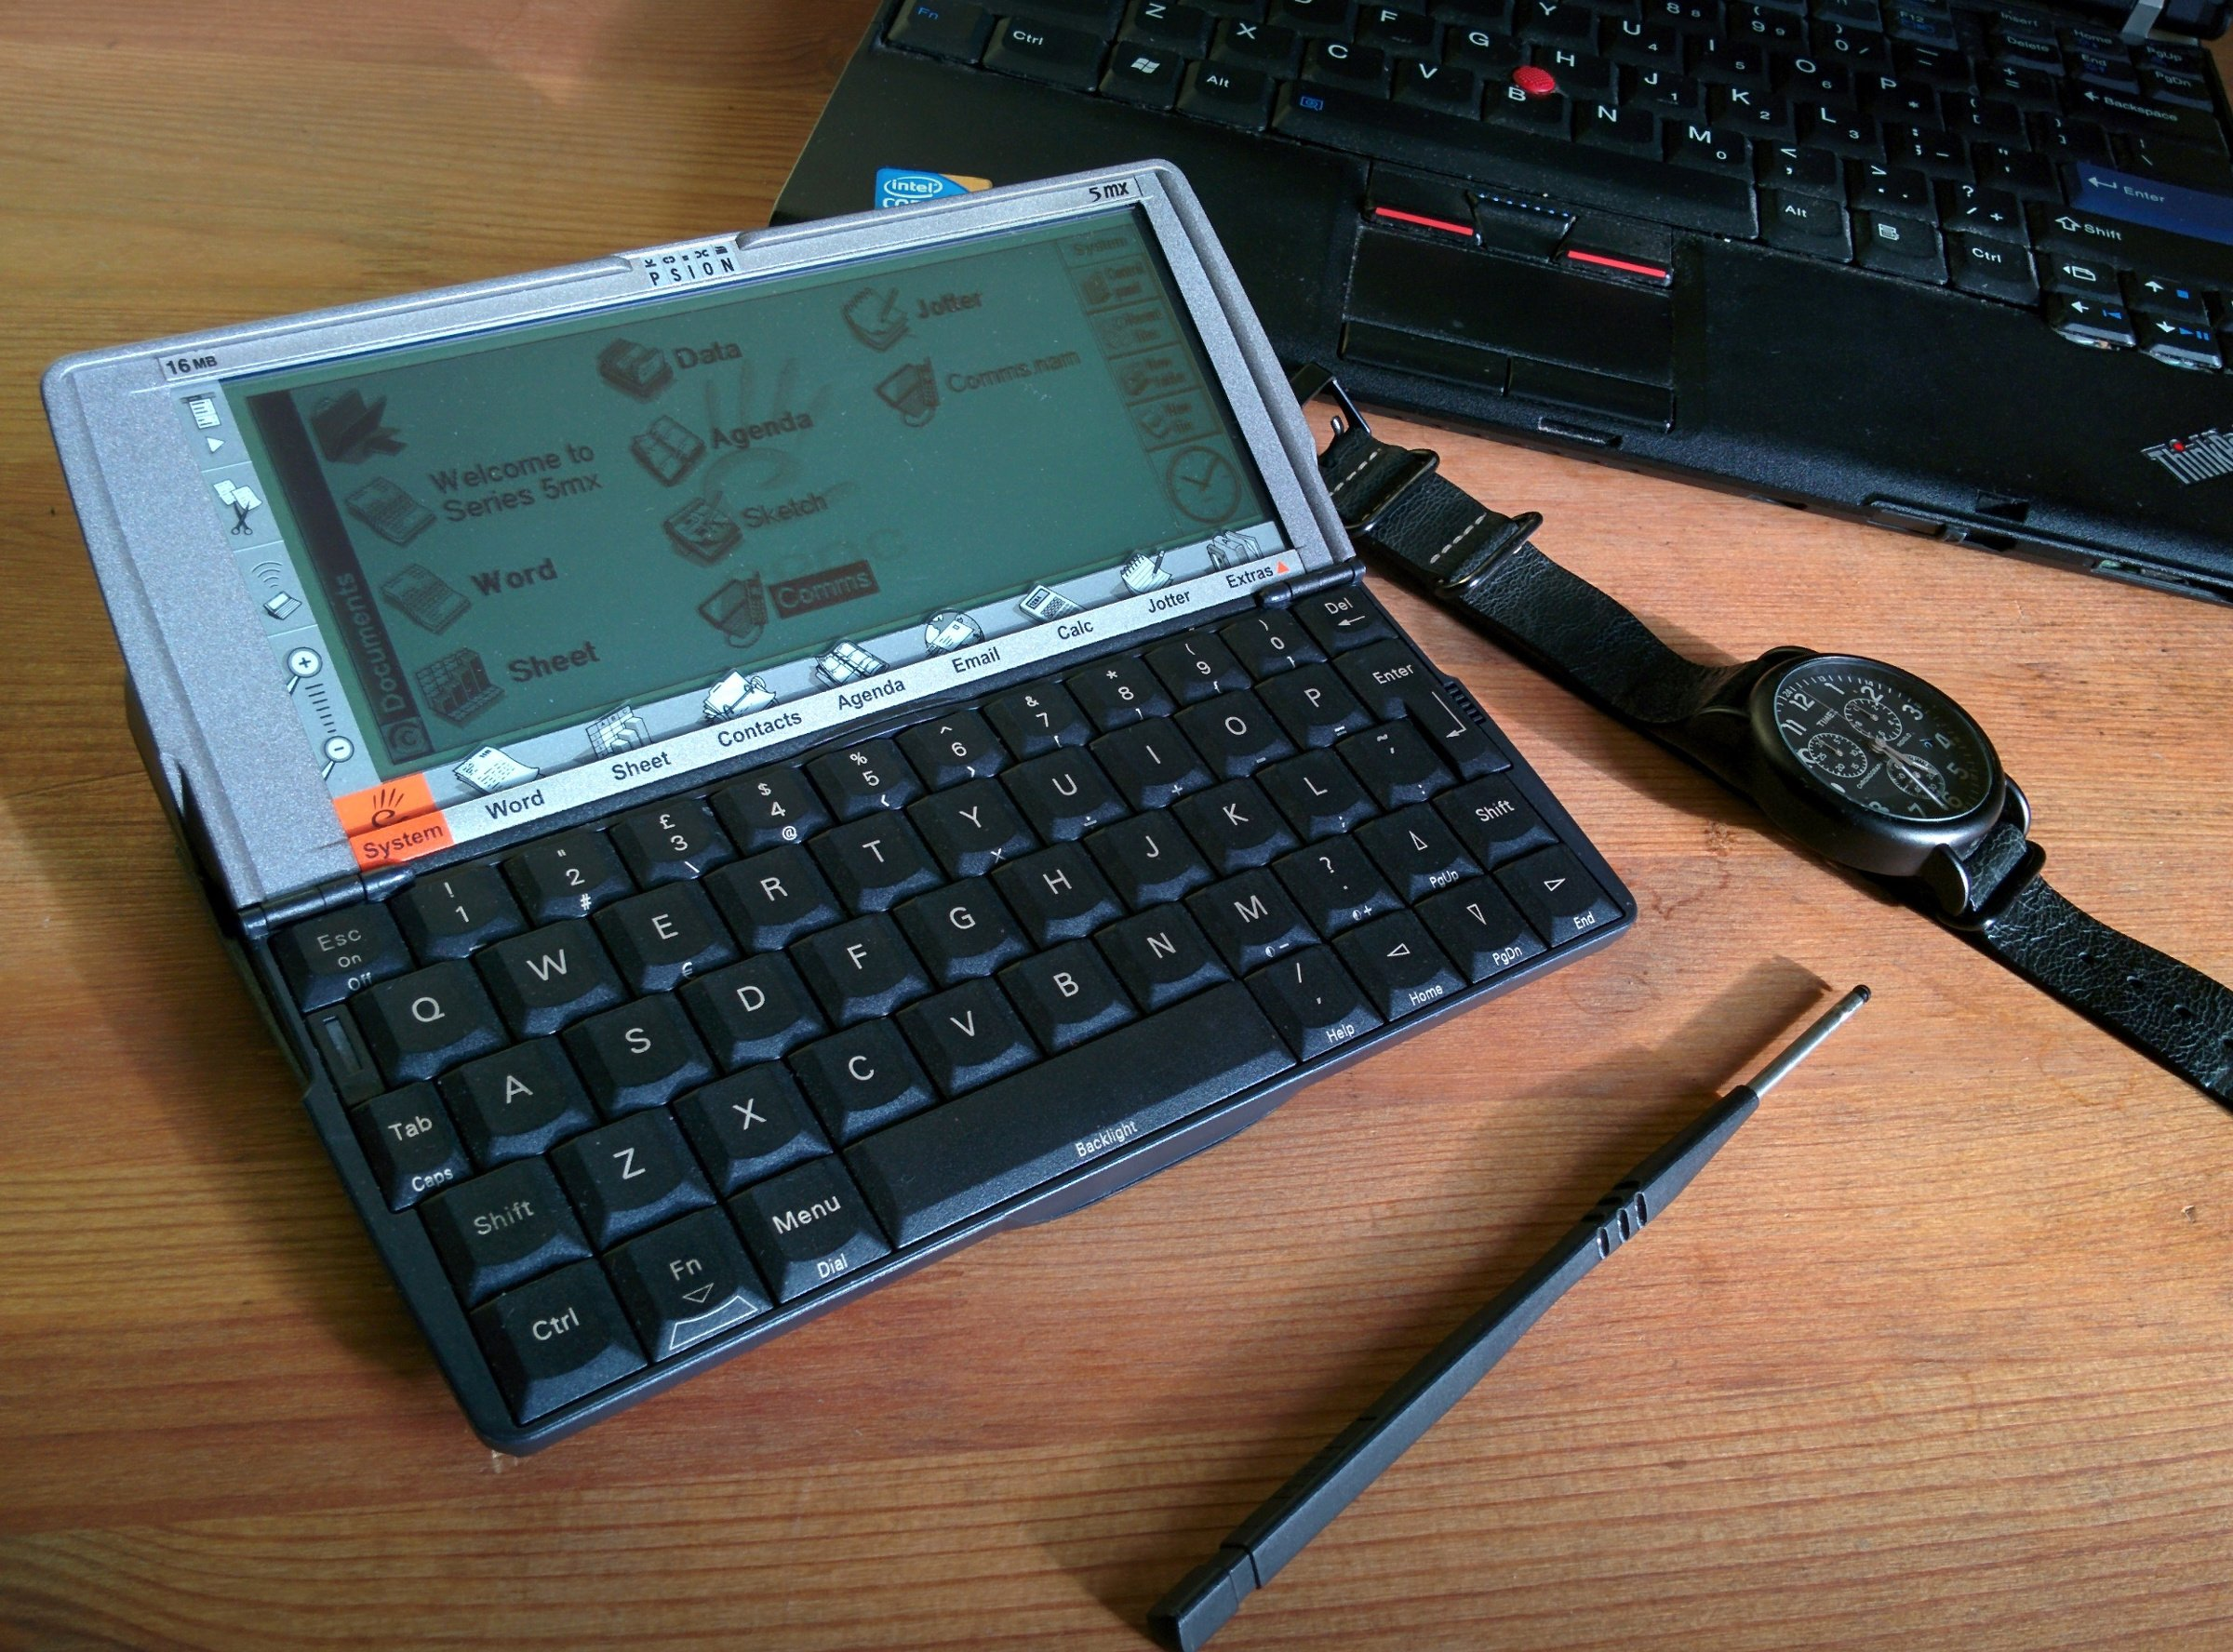 Retrocomputing in Modern Times: Rediscovering the Psion